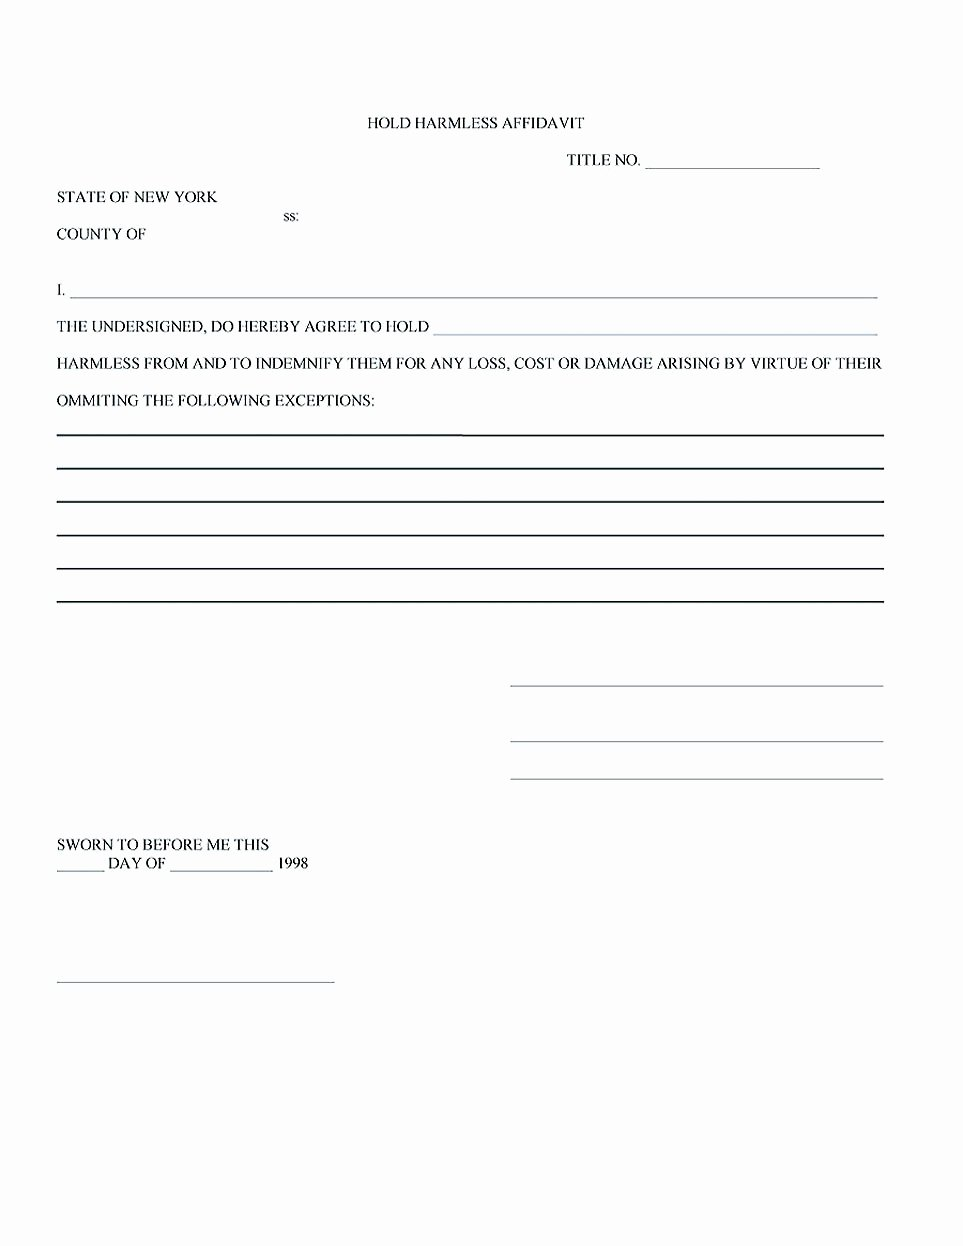 Hold Harmless Letter Template Luxury Making Hold Harmless Agreement Template for Different Purposes